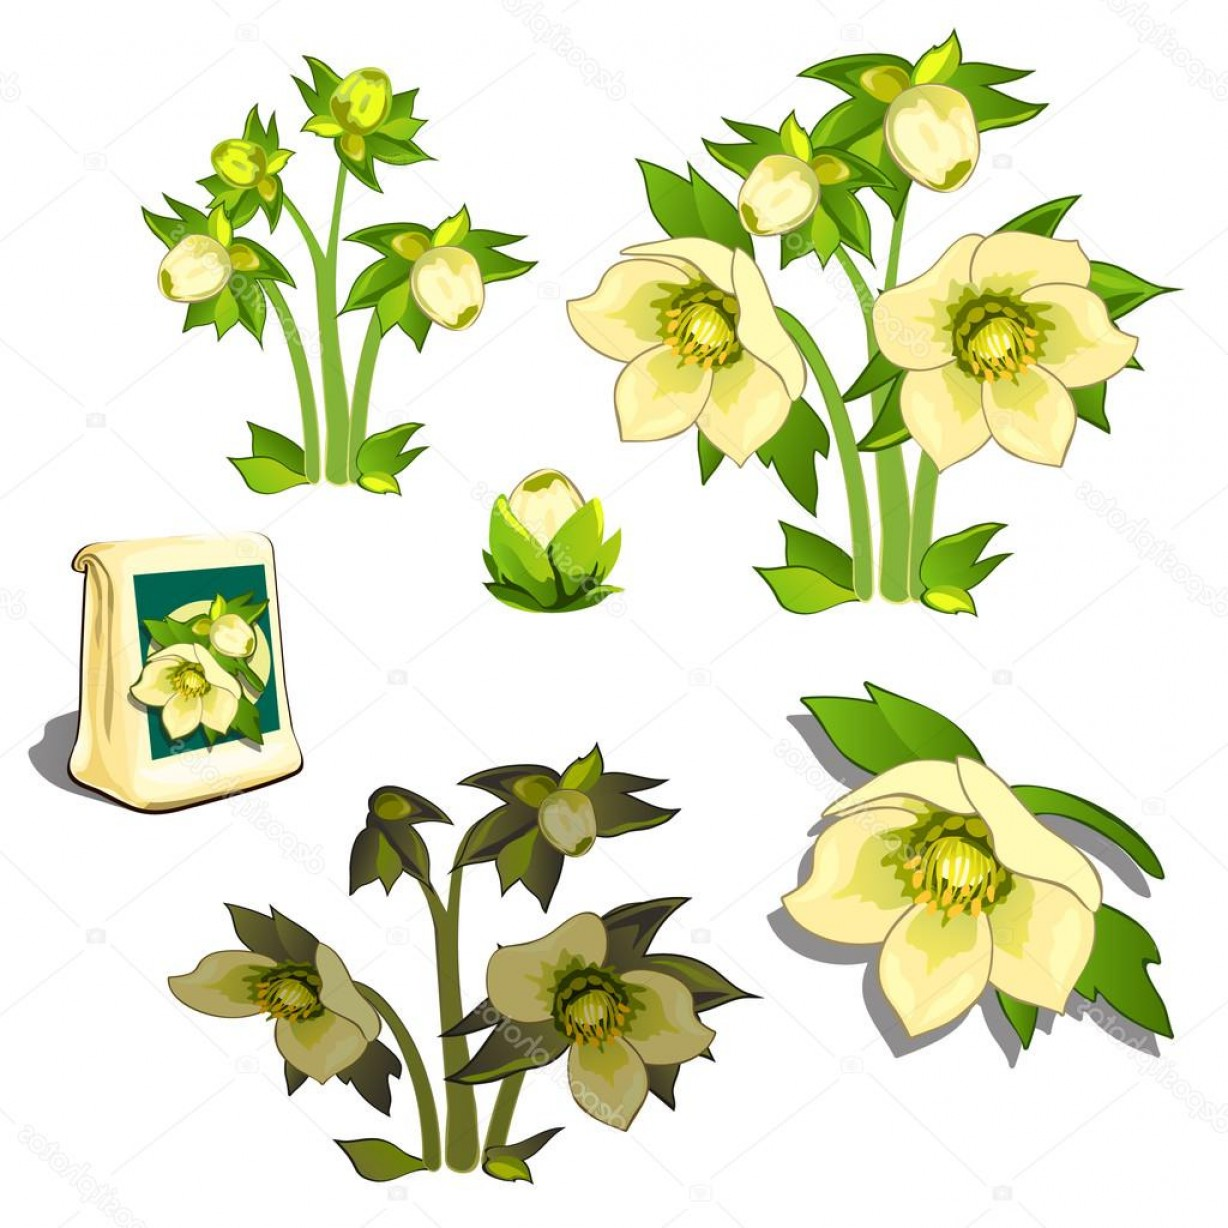 Seed Flower Vectors: Stock Illustration Seeds Stages Of Growth And